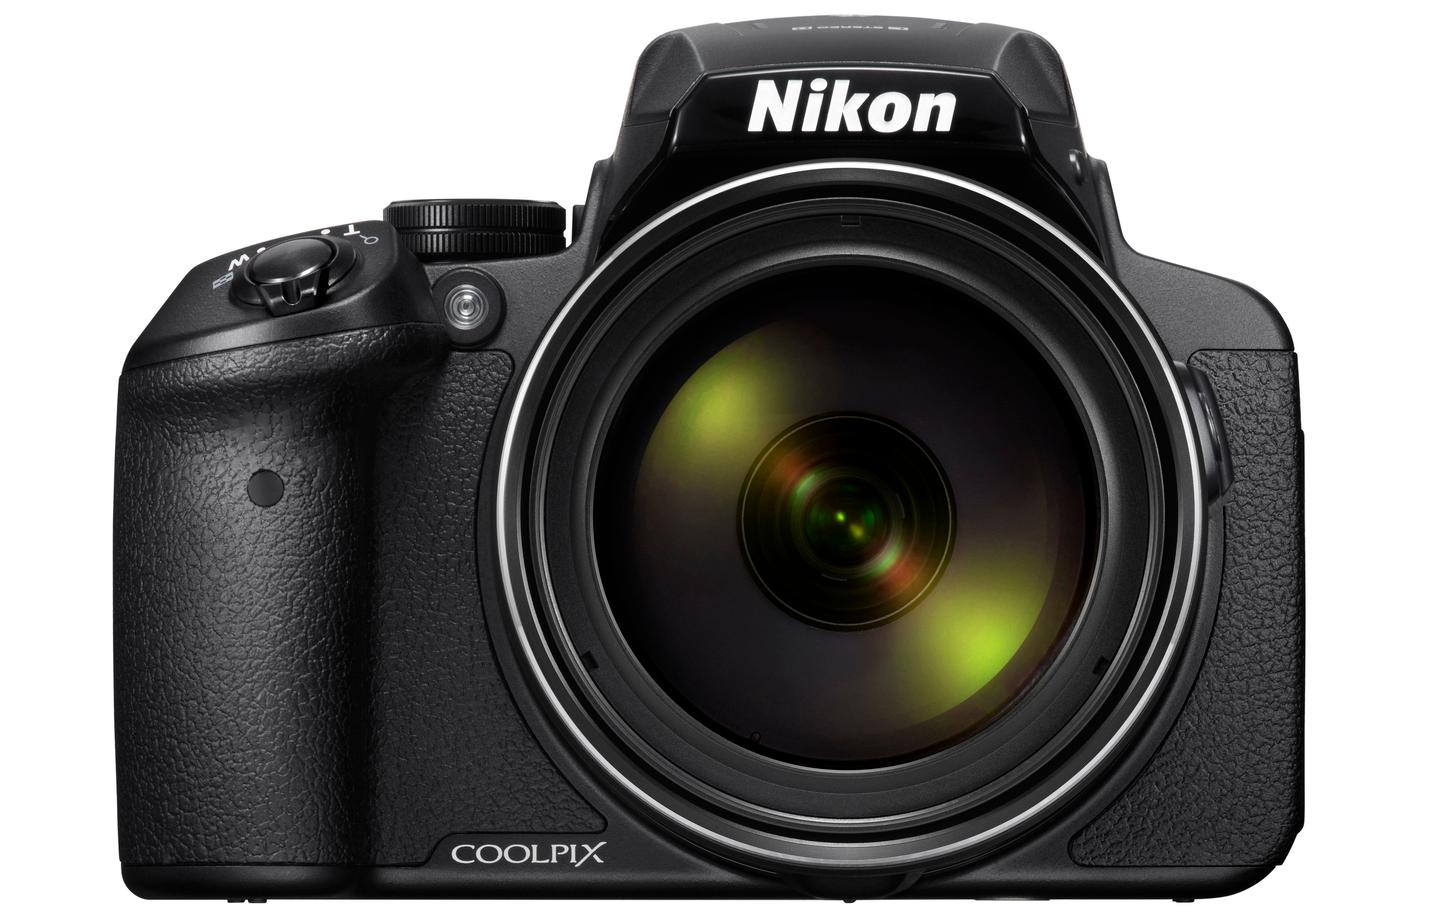 The Nikon Coolpix P900 is due to go on sale in April priced at US$600